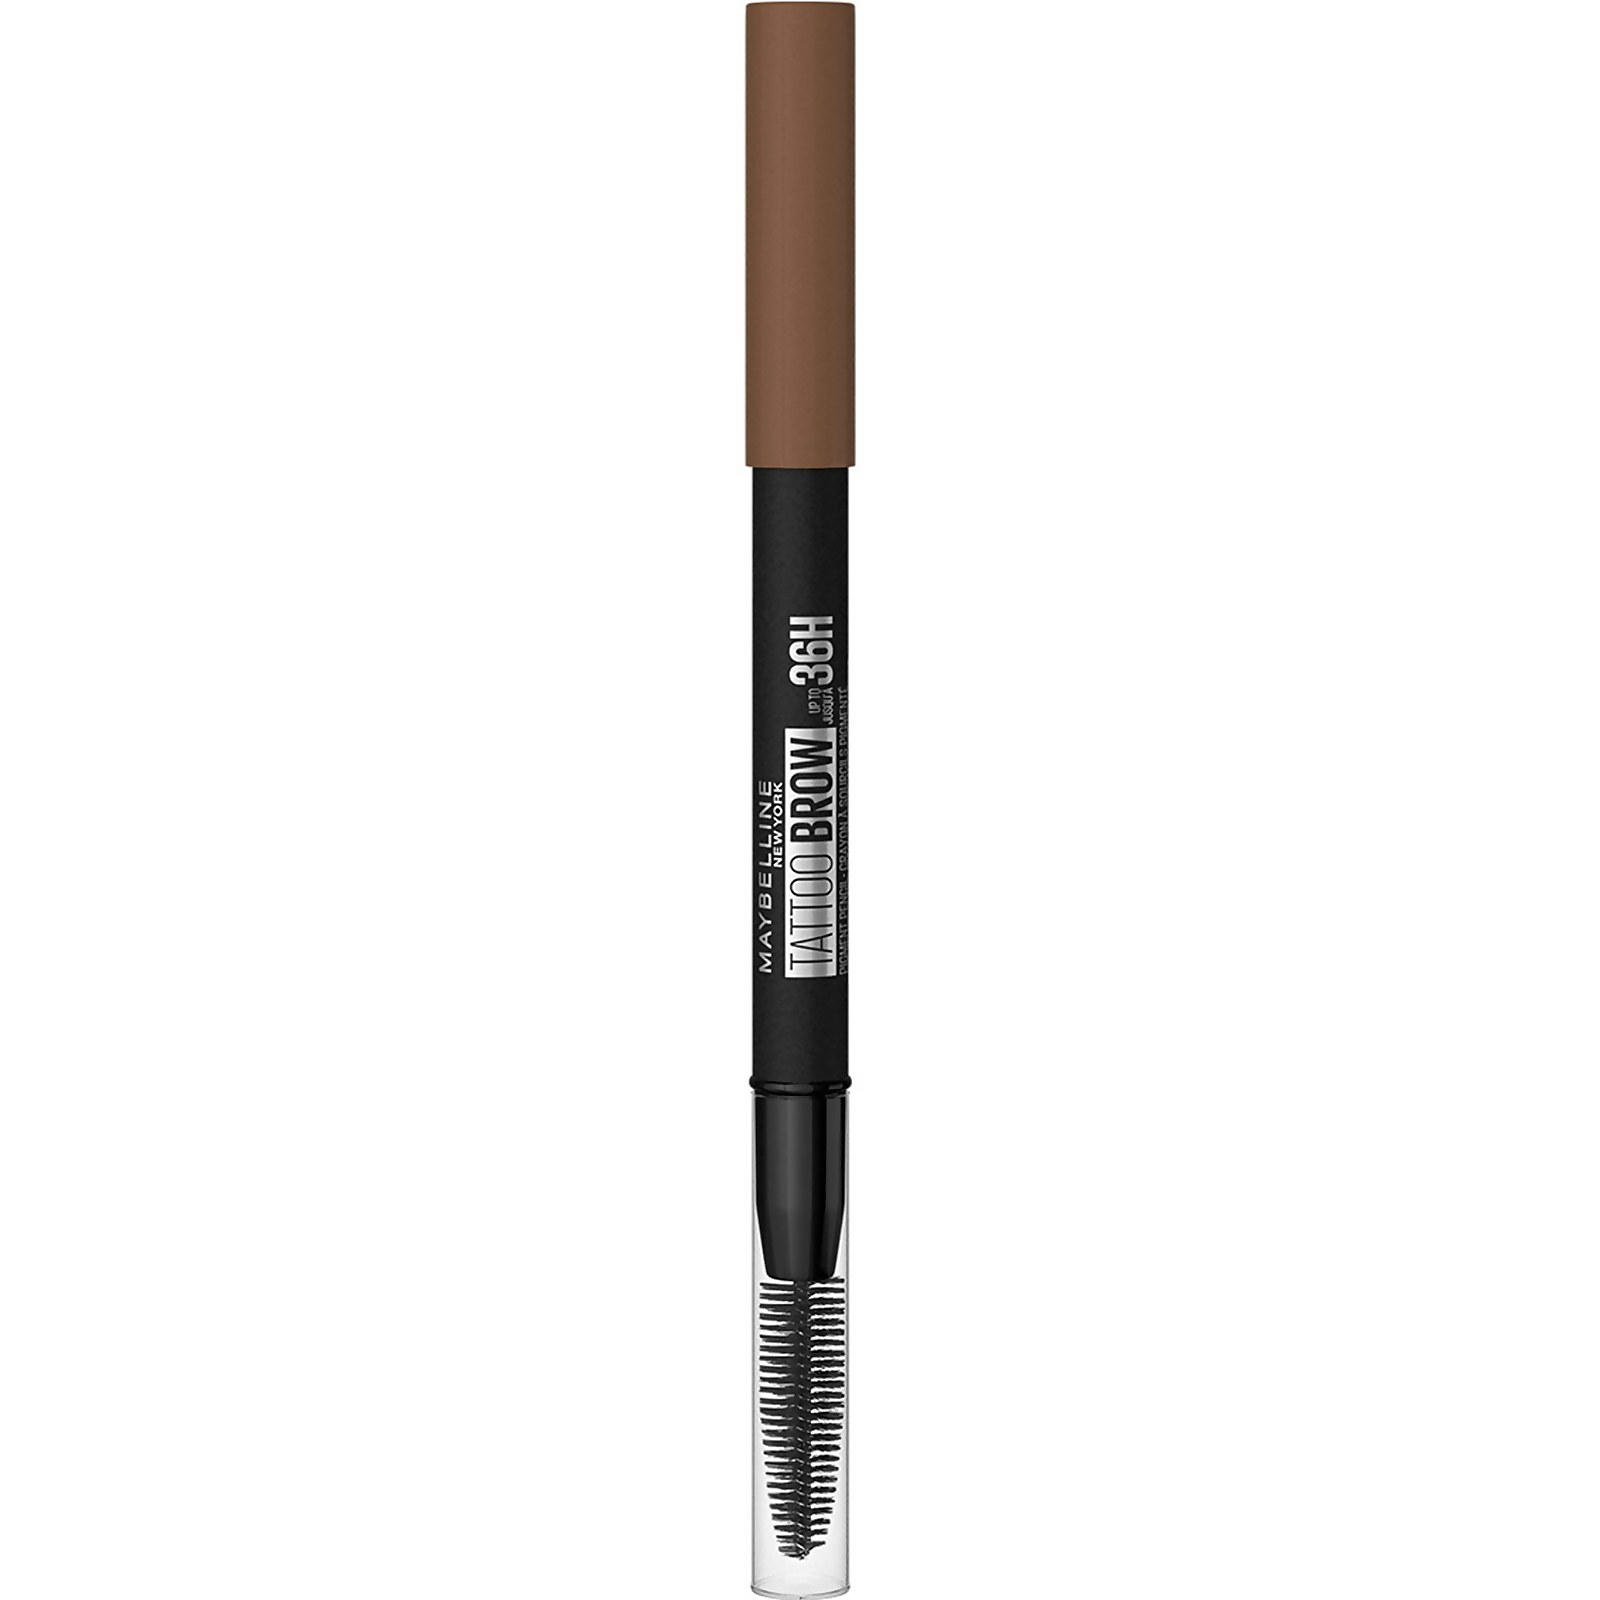 Maybelline Tattoo Brow Semi Permanent 36Hr Eyebrow Pencil 9.36g (Various Shades) - 3 Soft Brown